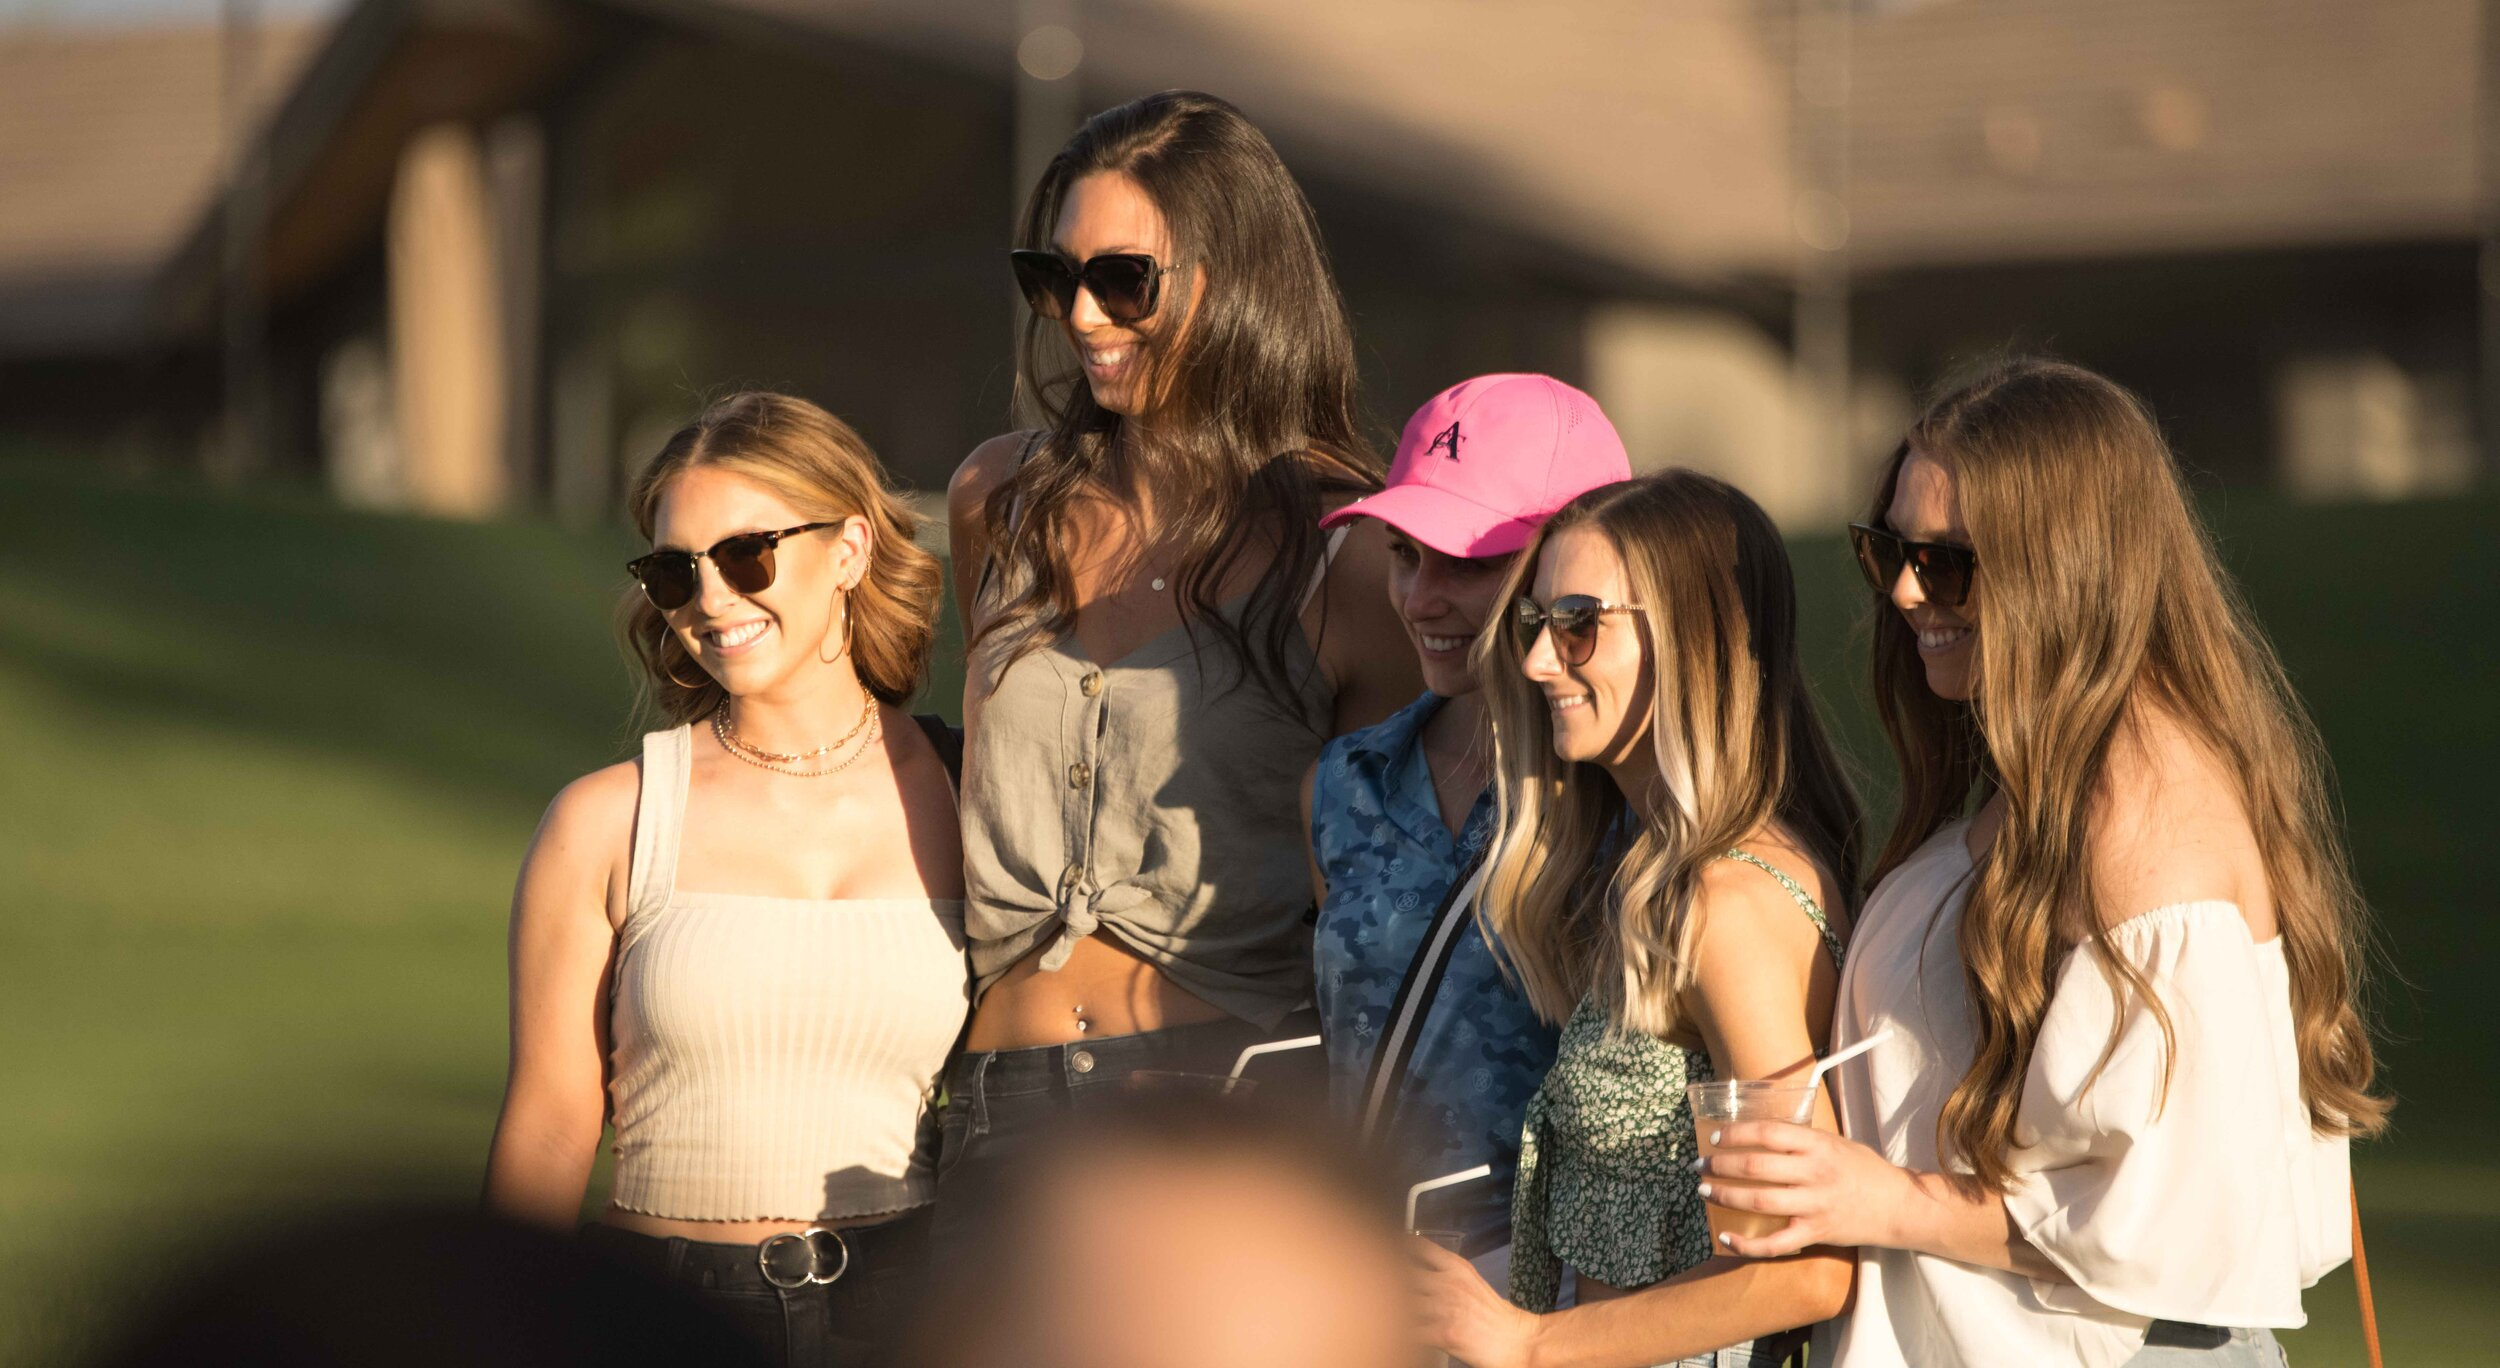 The wives and girlfriends, or WAGs, came out in full force to support the 2021 Grass Clippings Open.